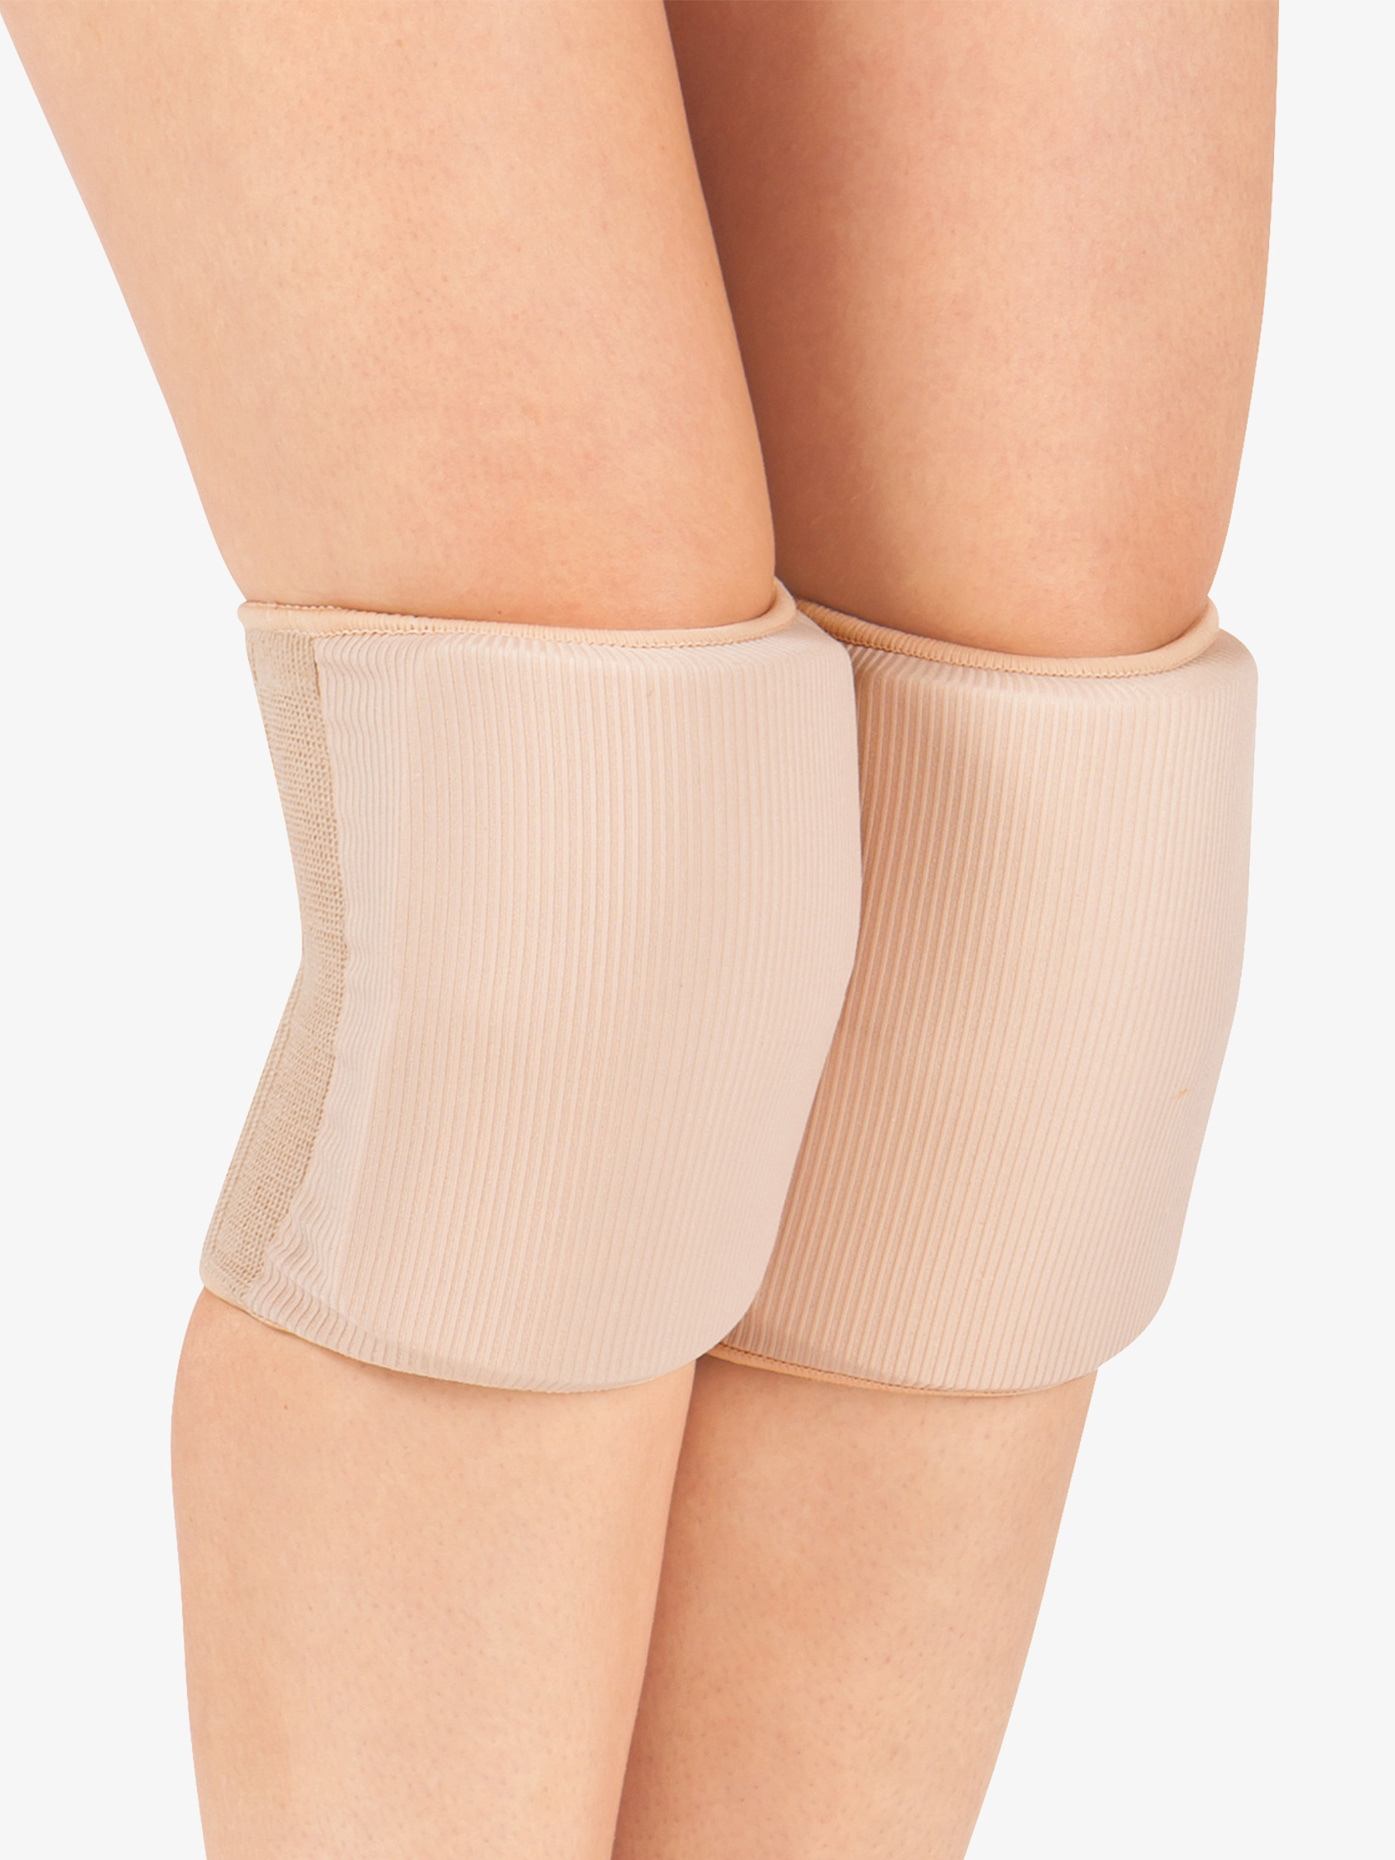 Dance Department Adult/Child Nude Knee Pads 3501